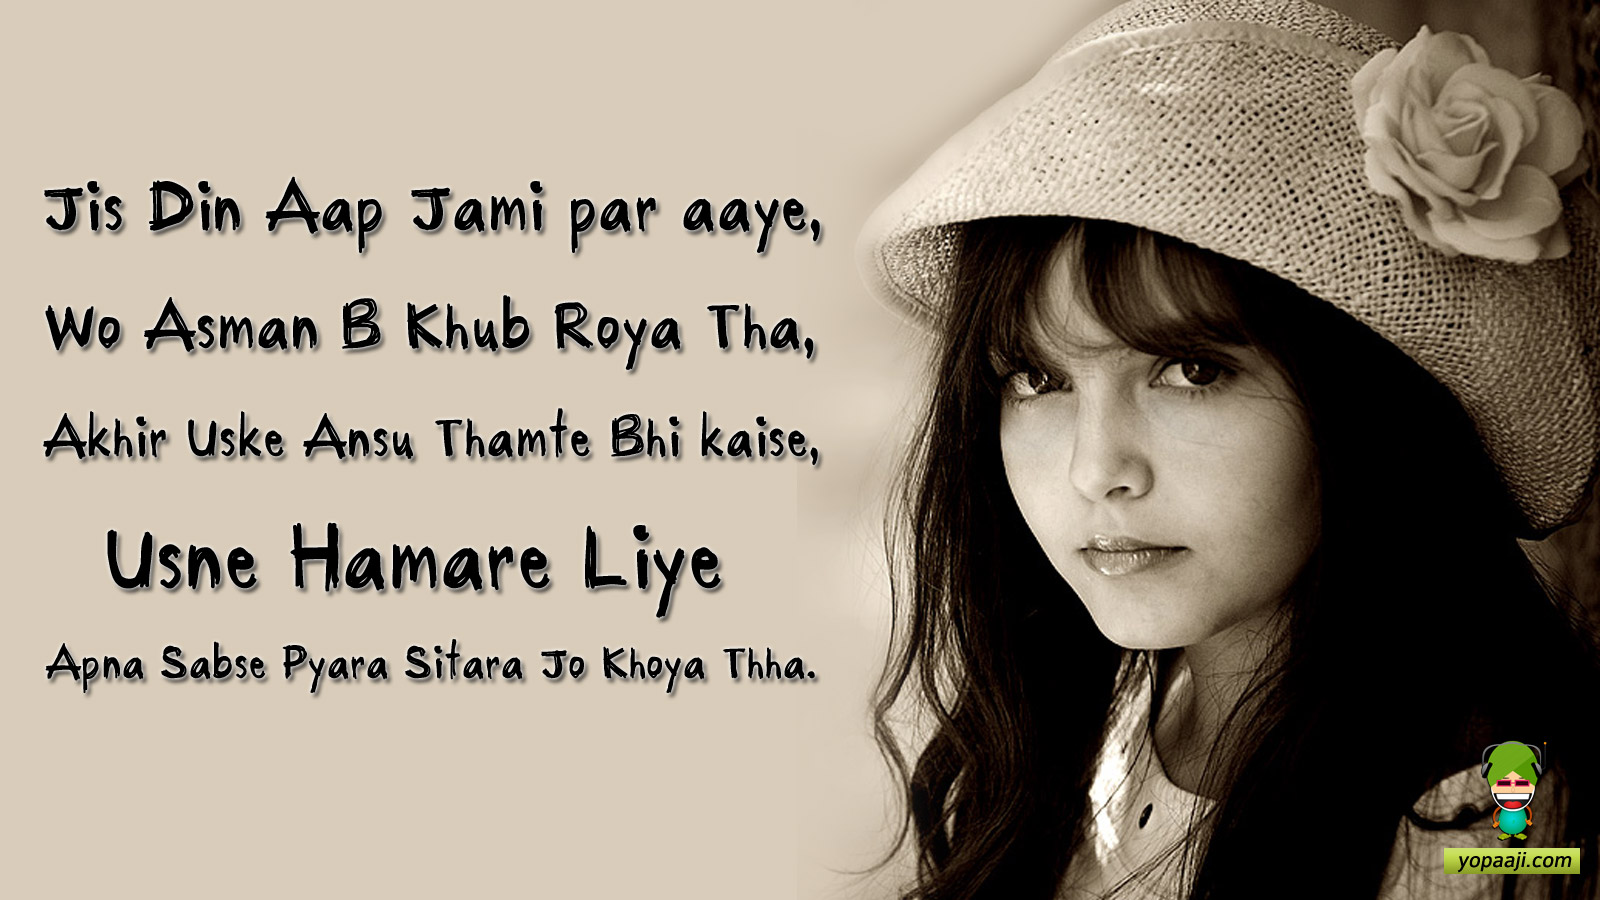 Love sms in hindi messages english in urdu in marathi - Best love shayari wallpaper ...